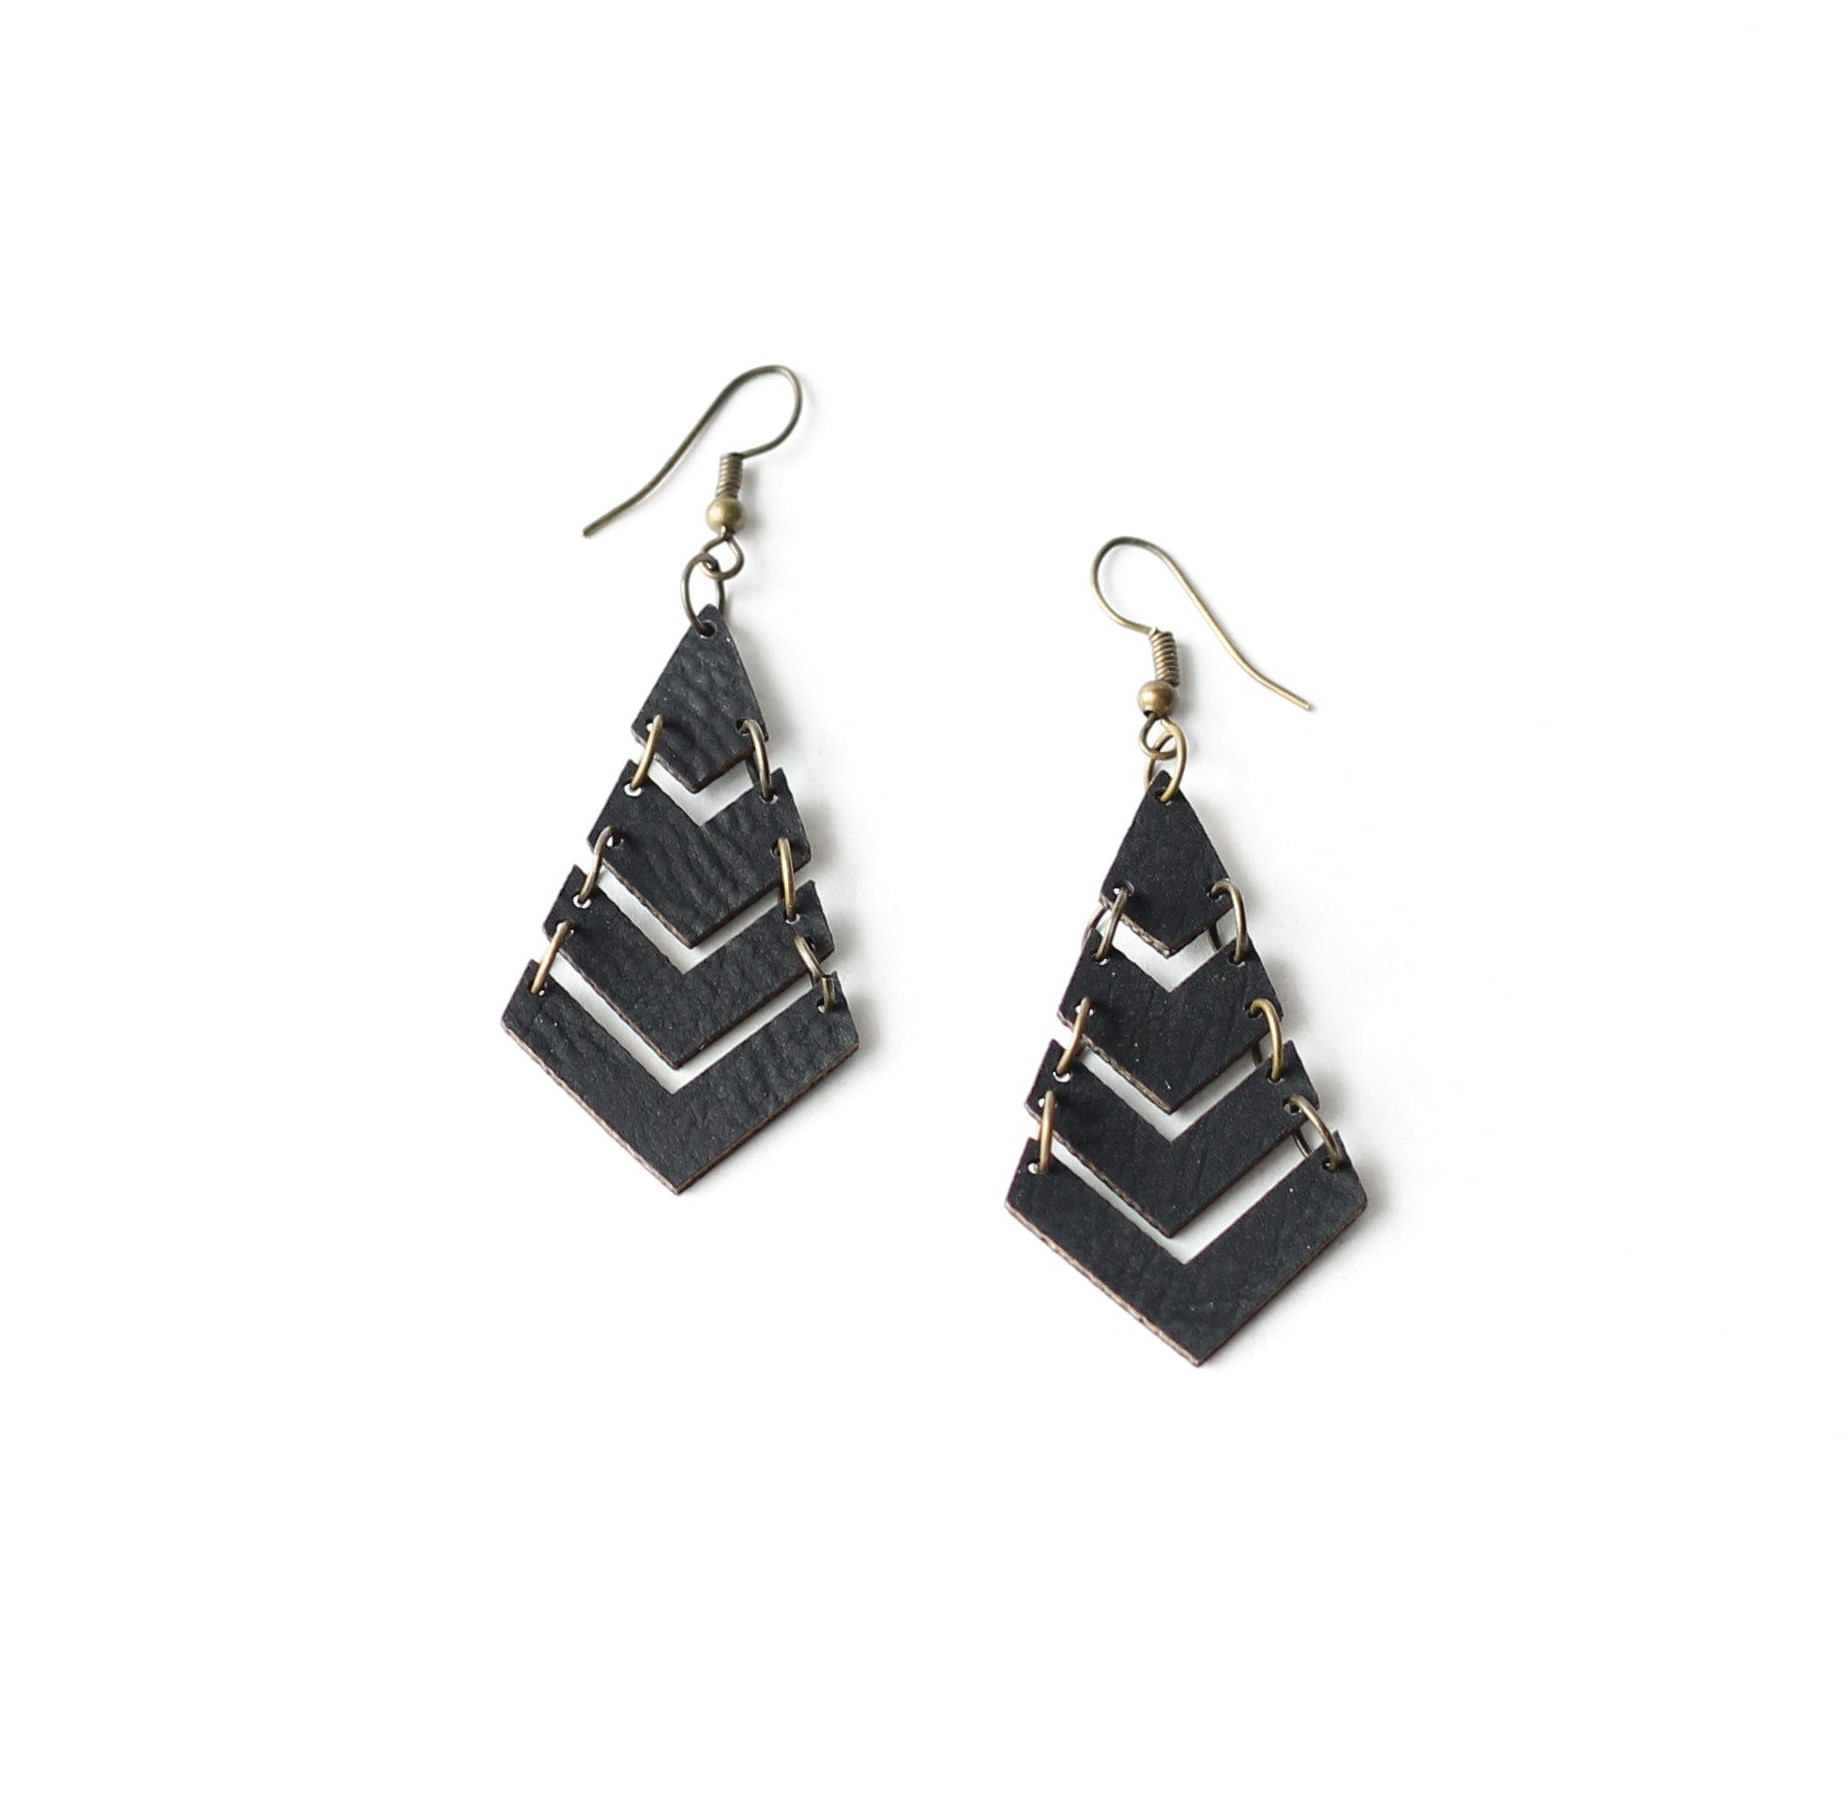 85fdeae1683e93 Leather Earrings | Linked Chevrons | JK Creative Wood